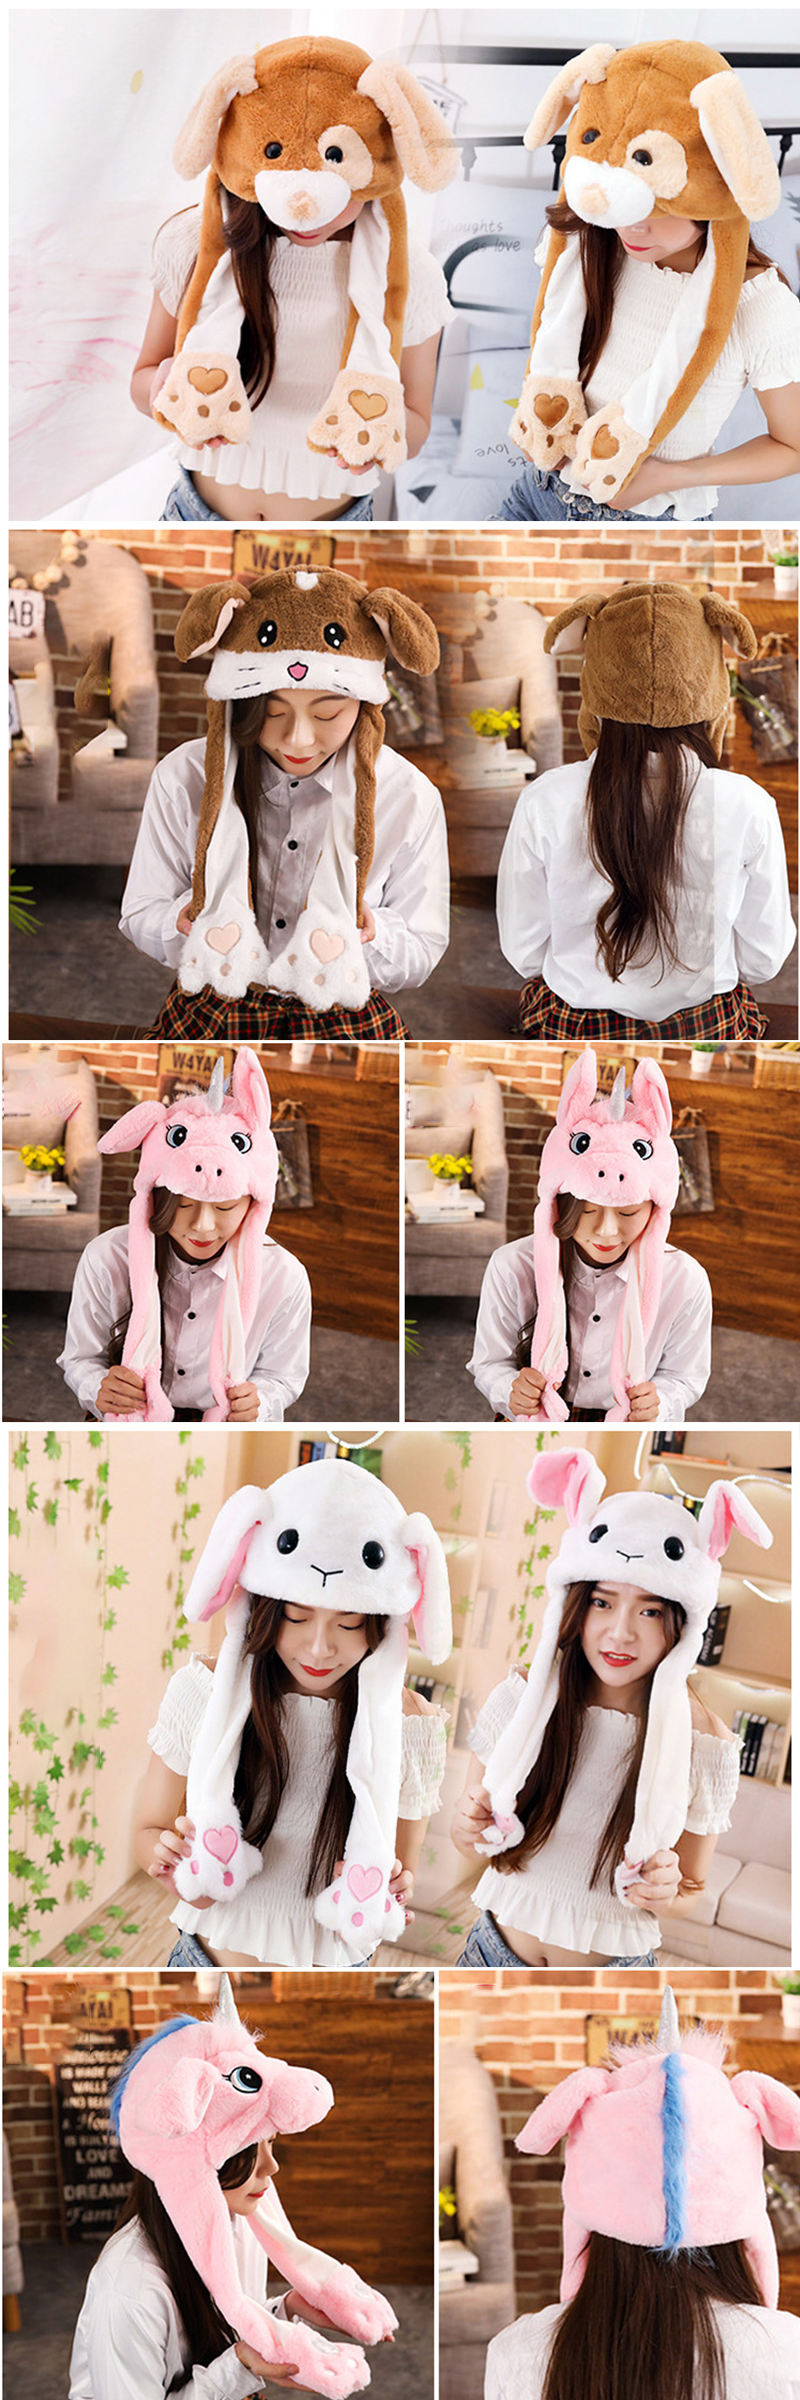 2019 Hot Sell Fashion Moving Hat Rabbit Ears Plush Sweet Cute Airbag Cap 2 Color Can Be Choose Fashionable And Attractive Packages Girl's Accessories